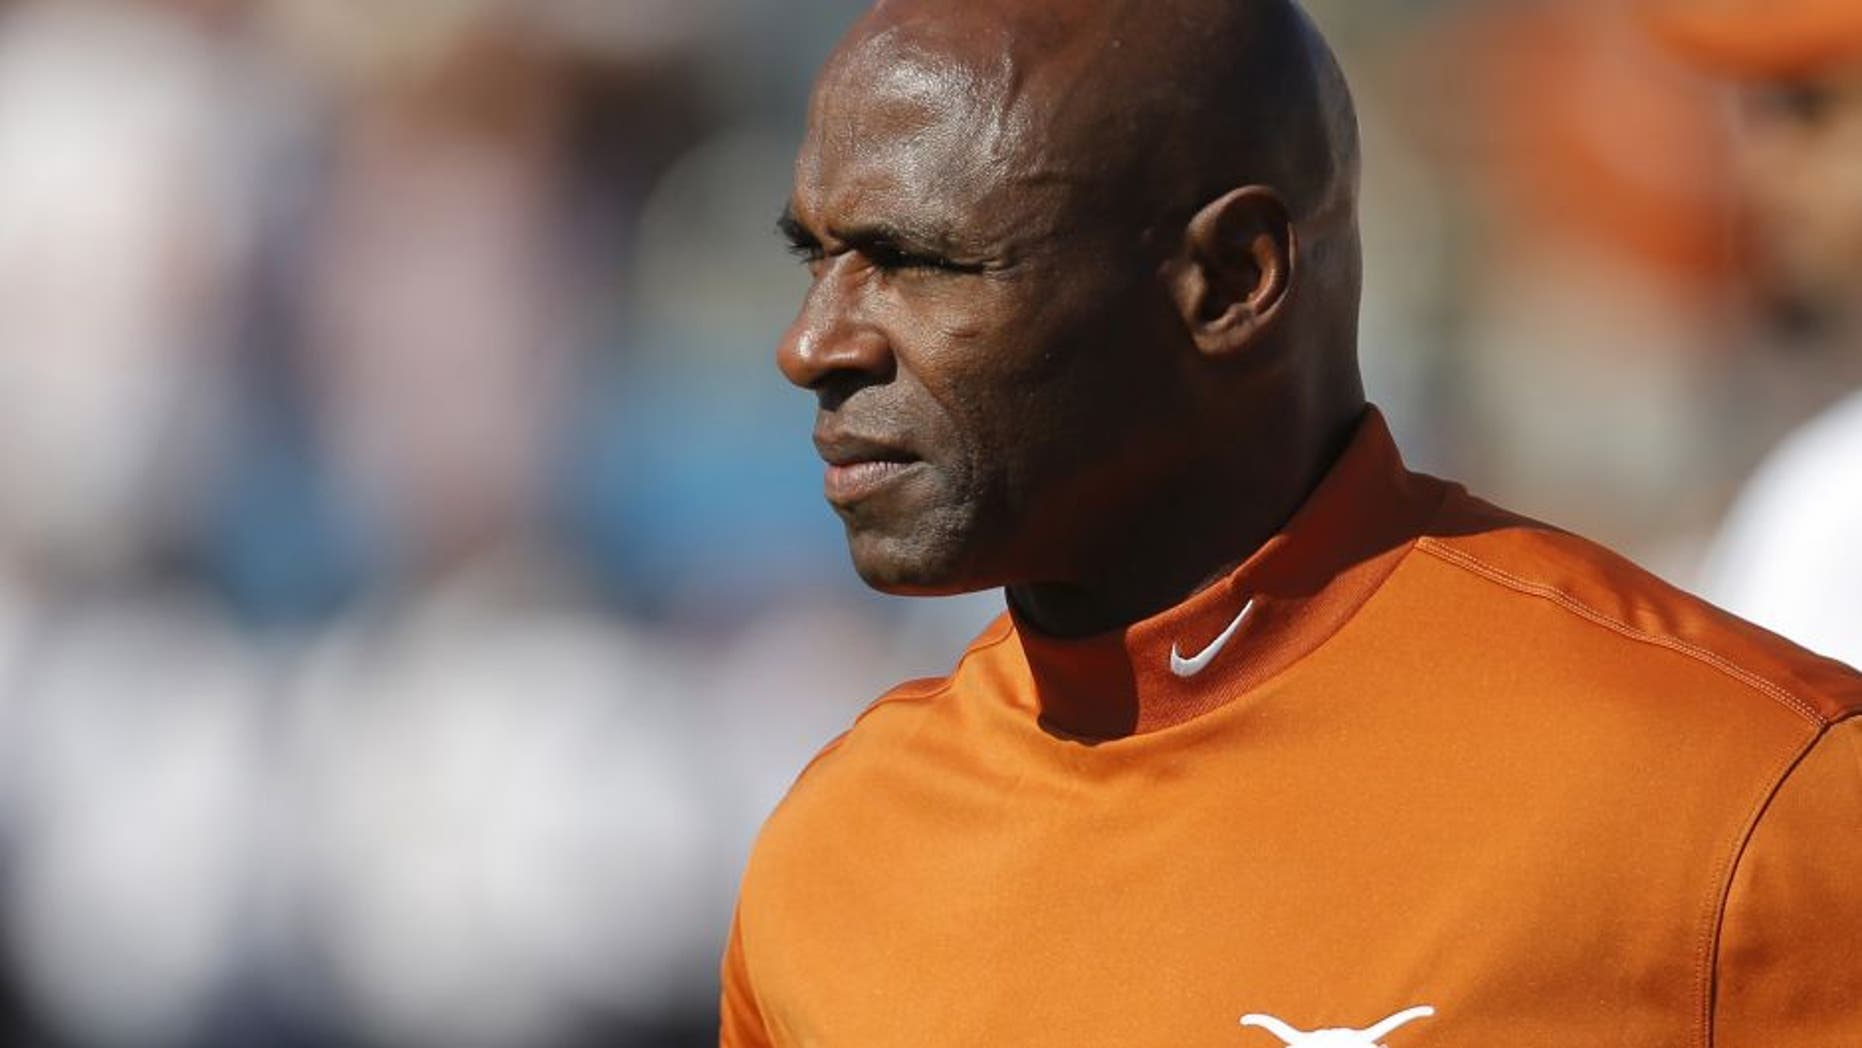 Texas head coach Charlie Strong looks on during warmups before the first half against Oklahoma at the Cotton Bowl in Dallas on Saturday, Oct. 10, 2015. (Brandon Wade/Fort Worth Star-Telegram/TNS via Getty Images)